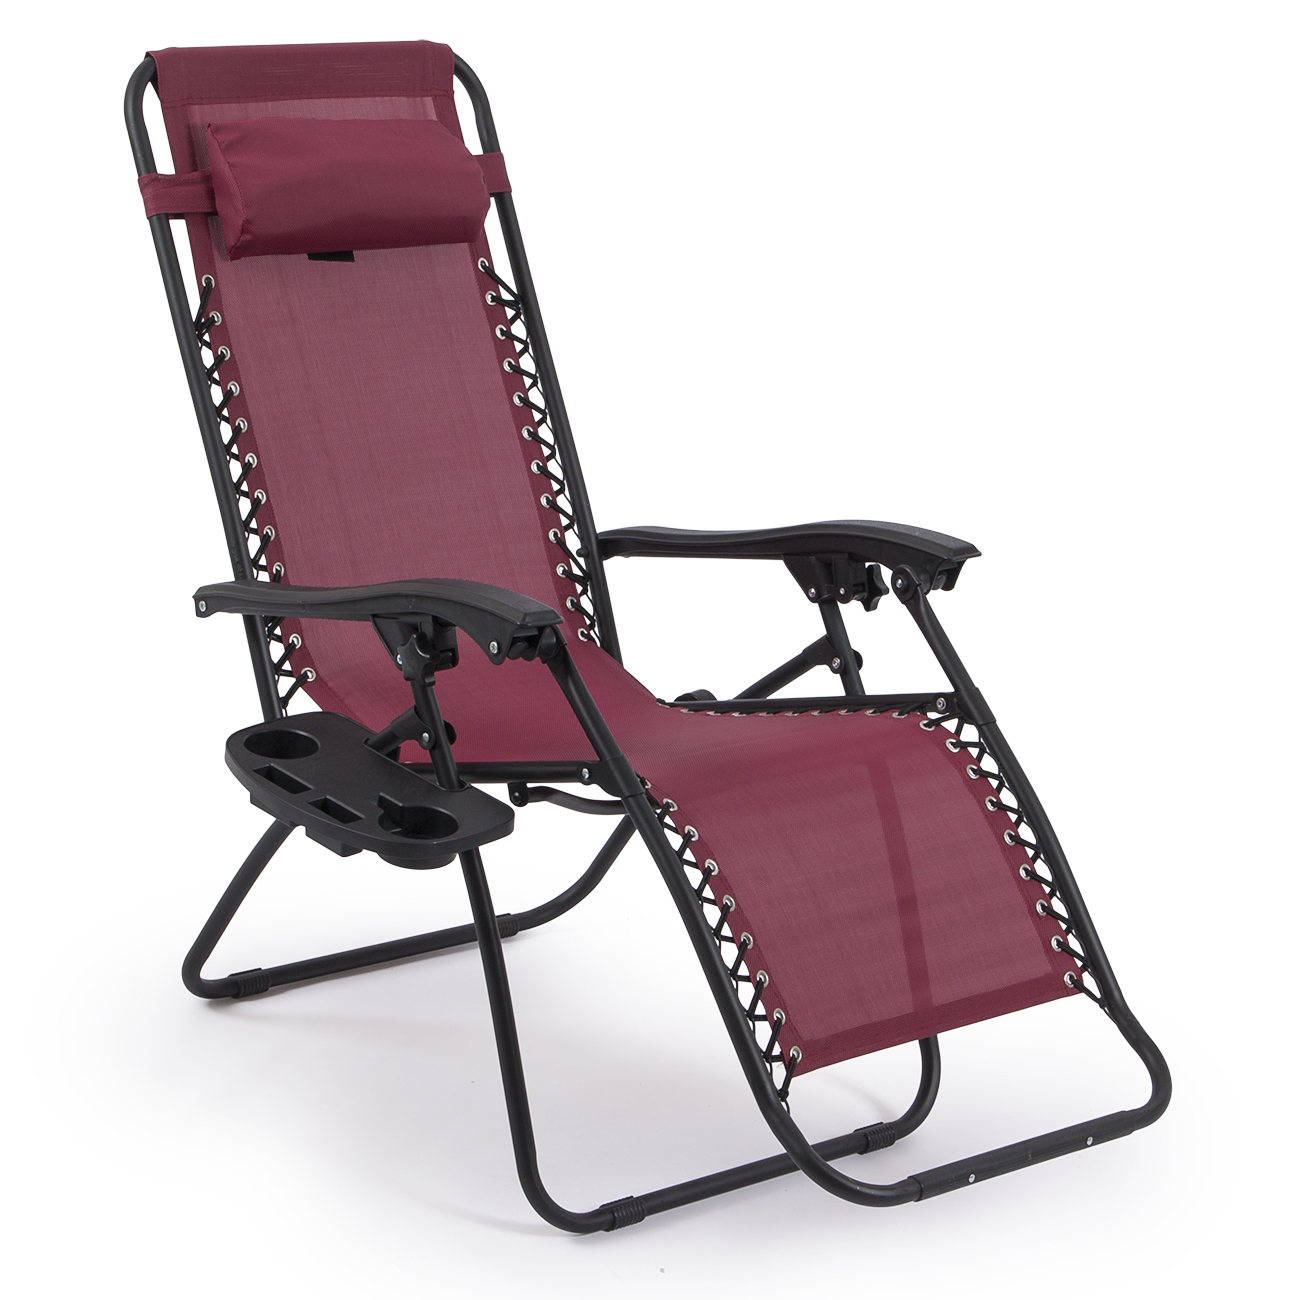 Outdoor Folding Chairs 2 Folding Zero Gravity Reclining Lounge Chairs 43utility